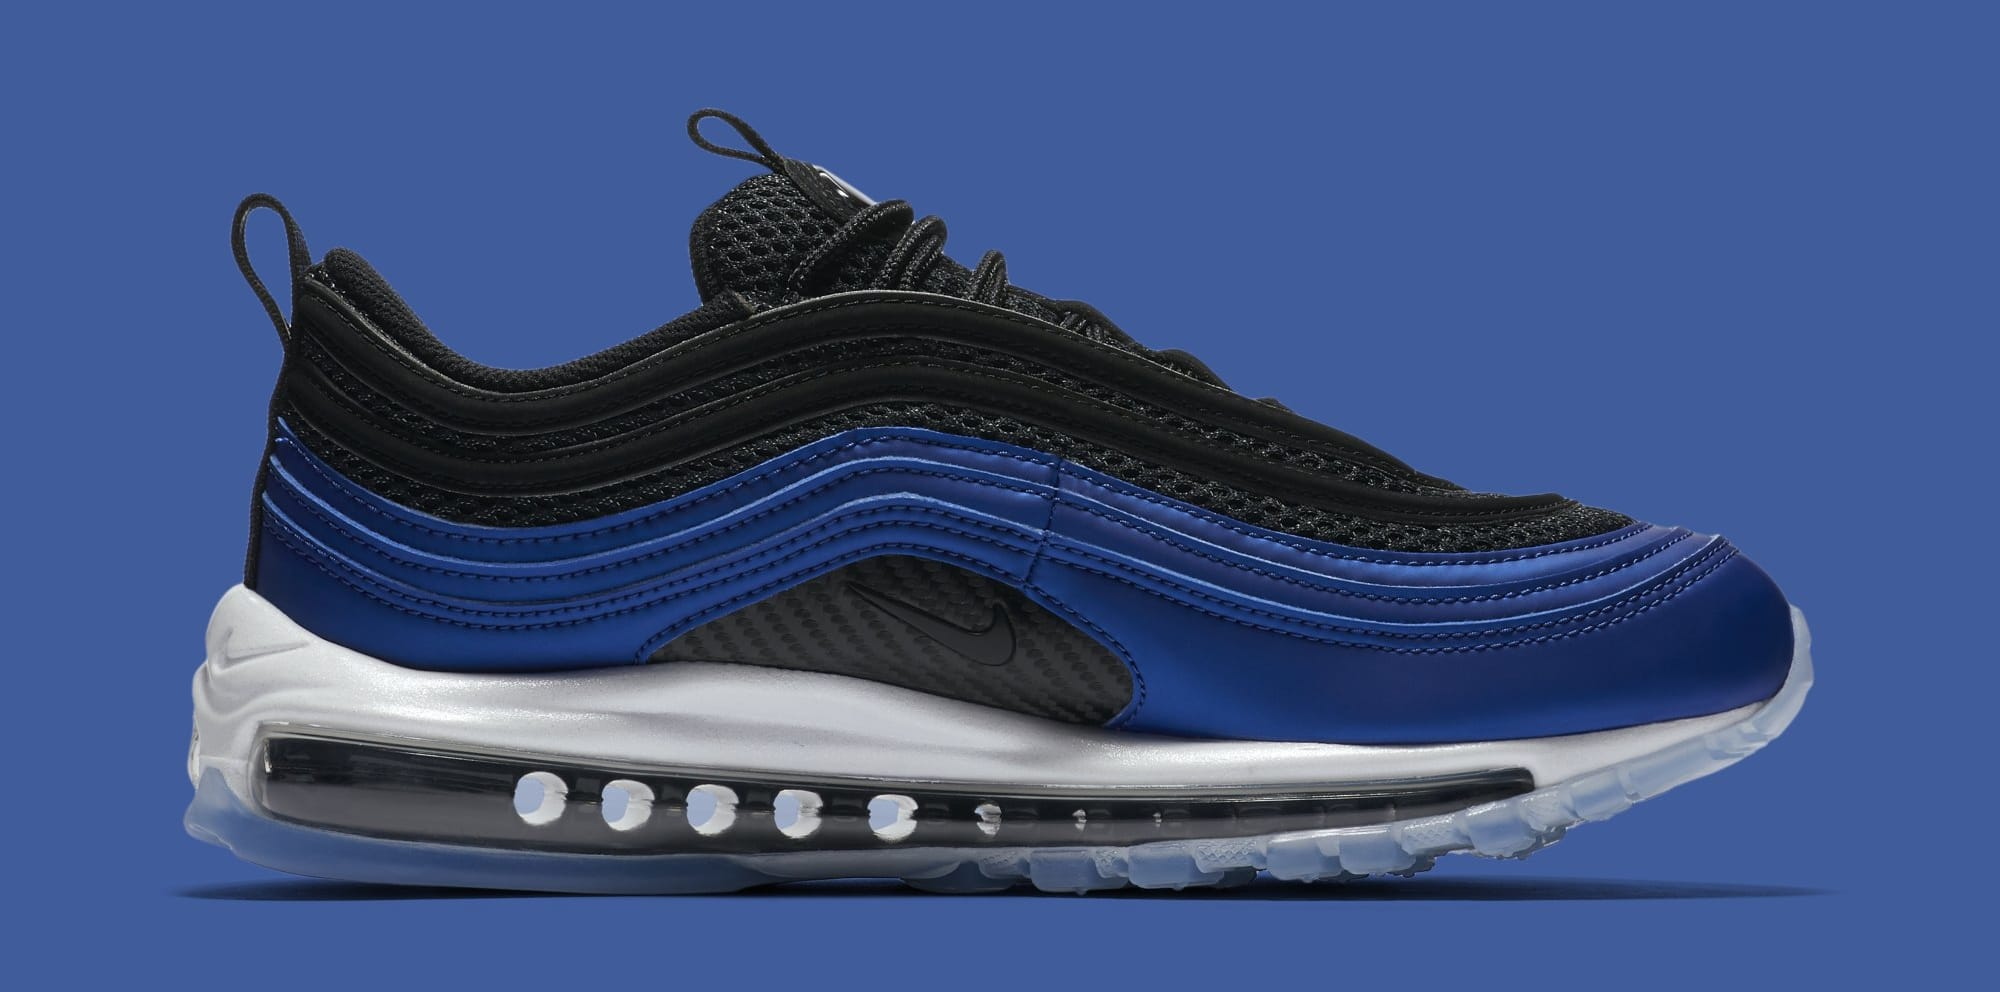 Nike Air Max 97 Foamposite Game Royal White Black Ci5011 400